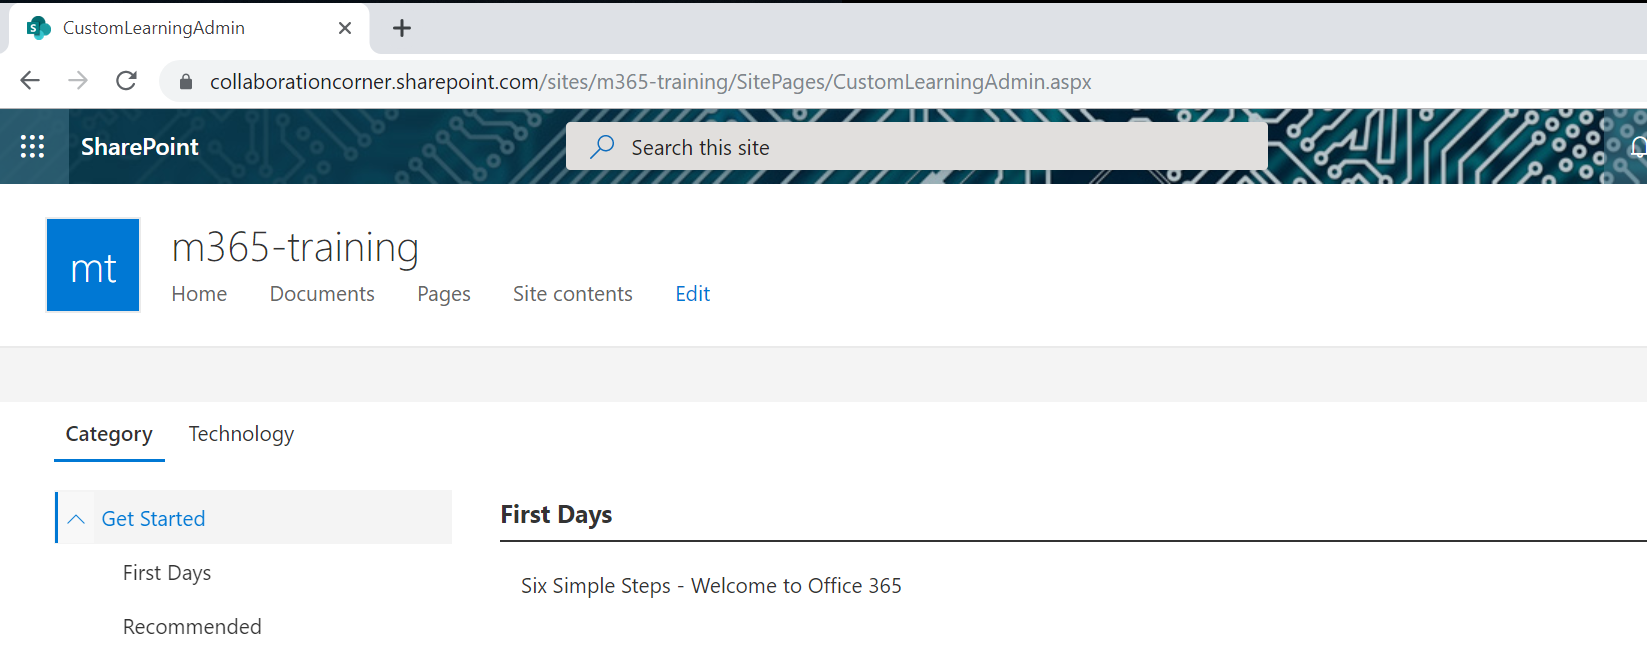 CustomLearningAdmin aspx first use not working with Firefox